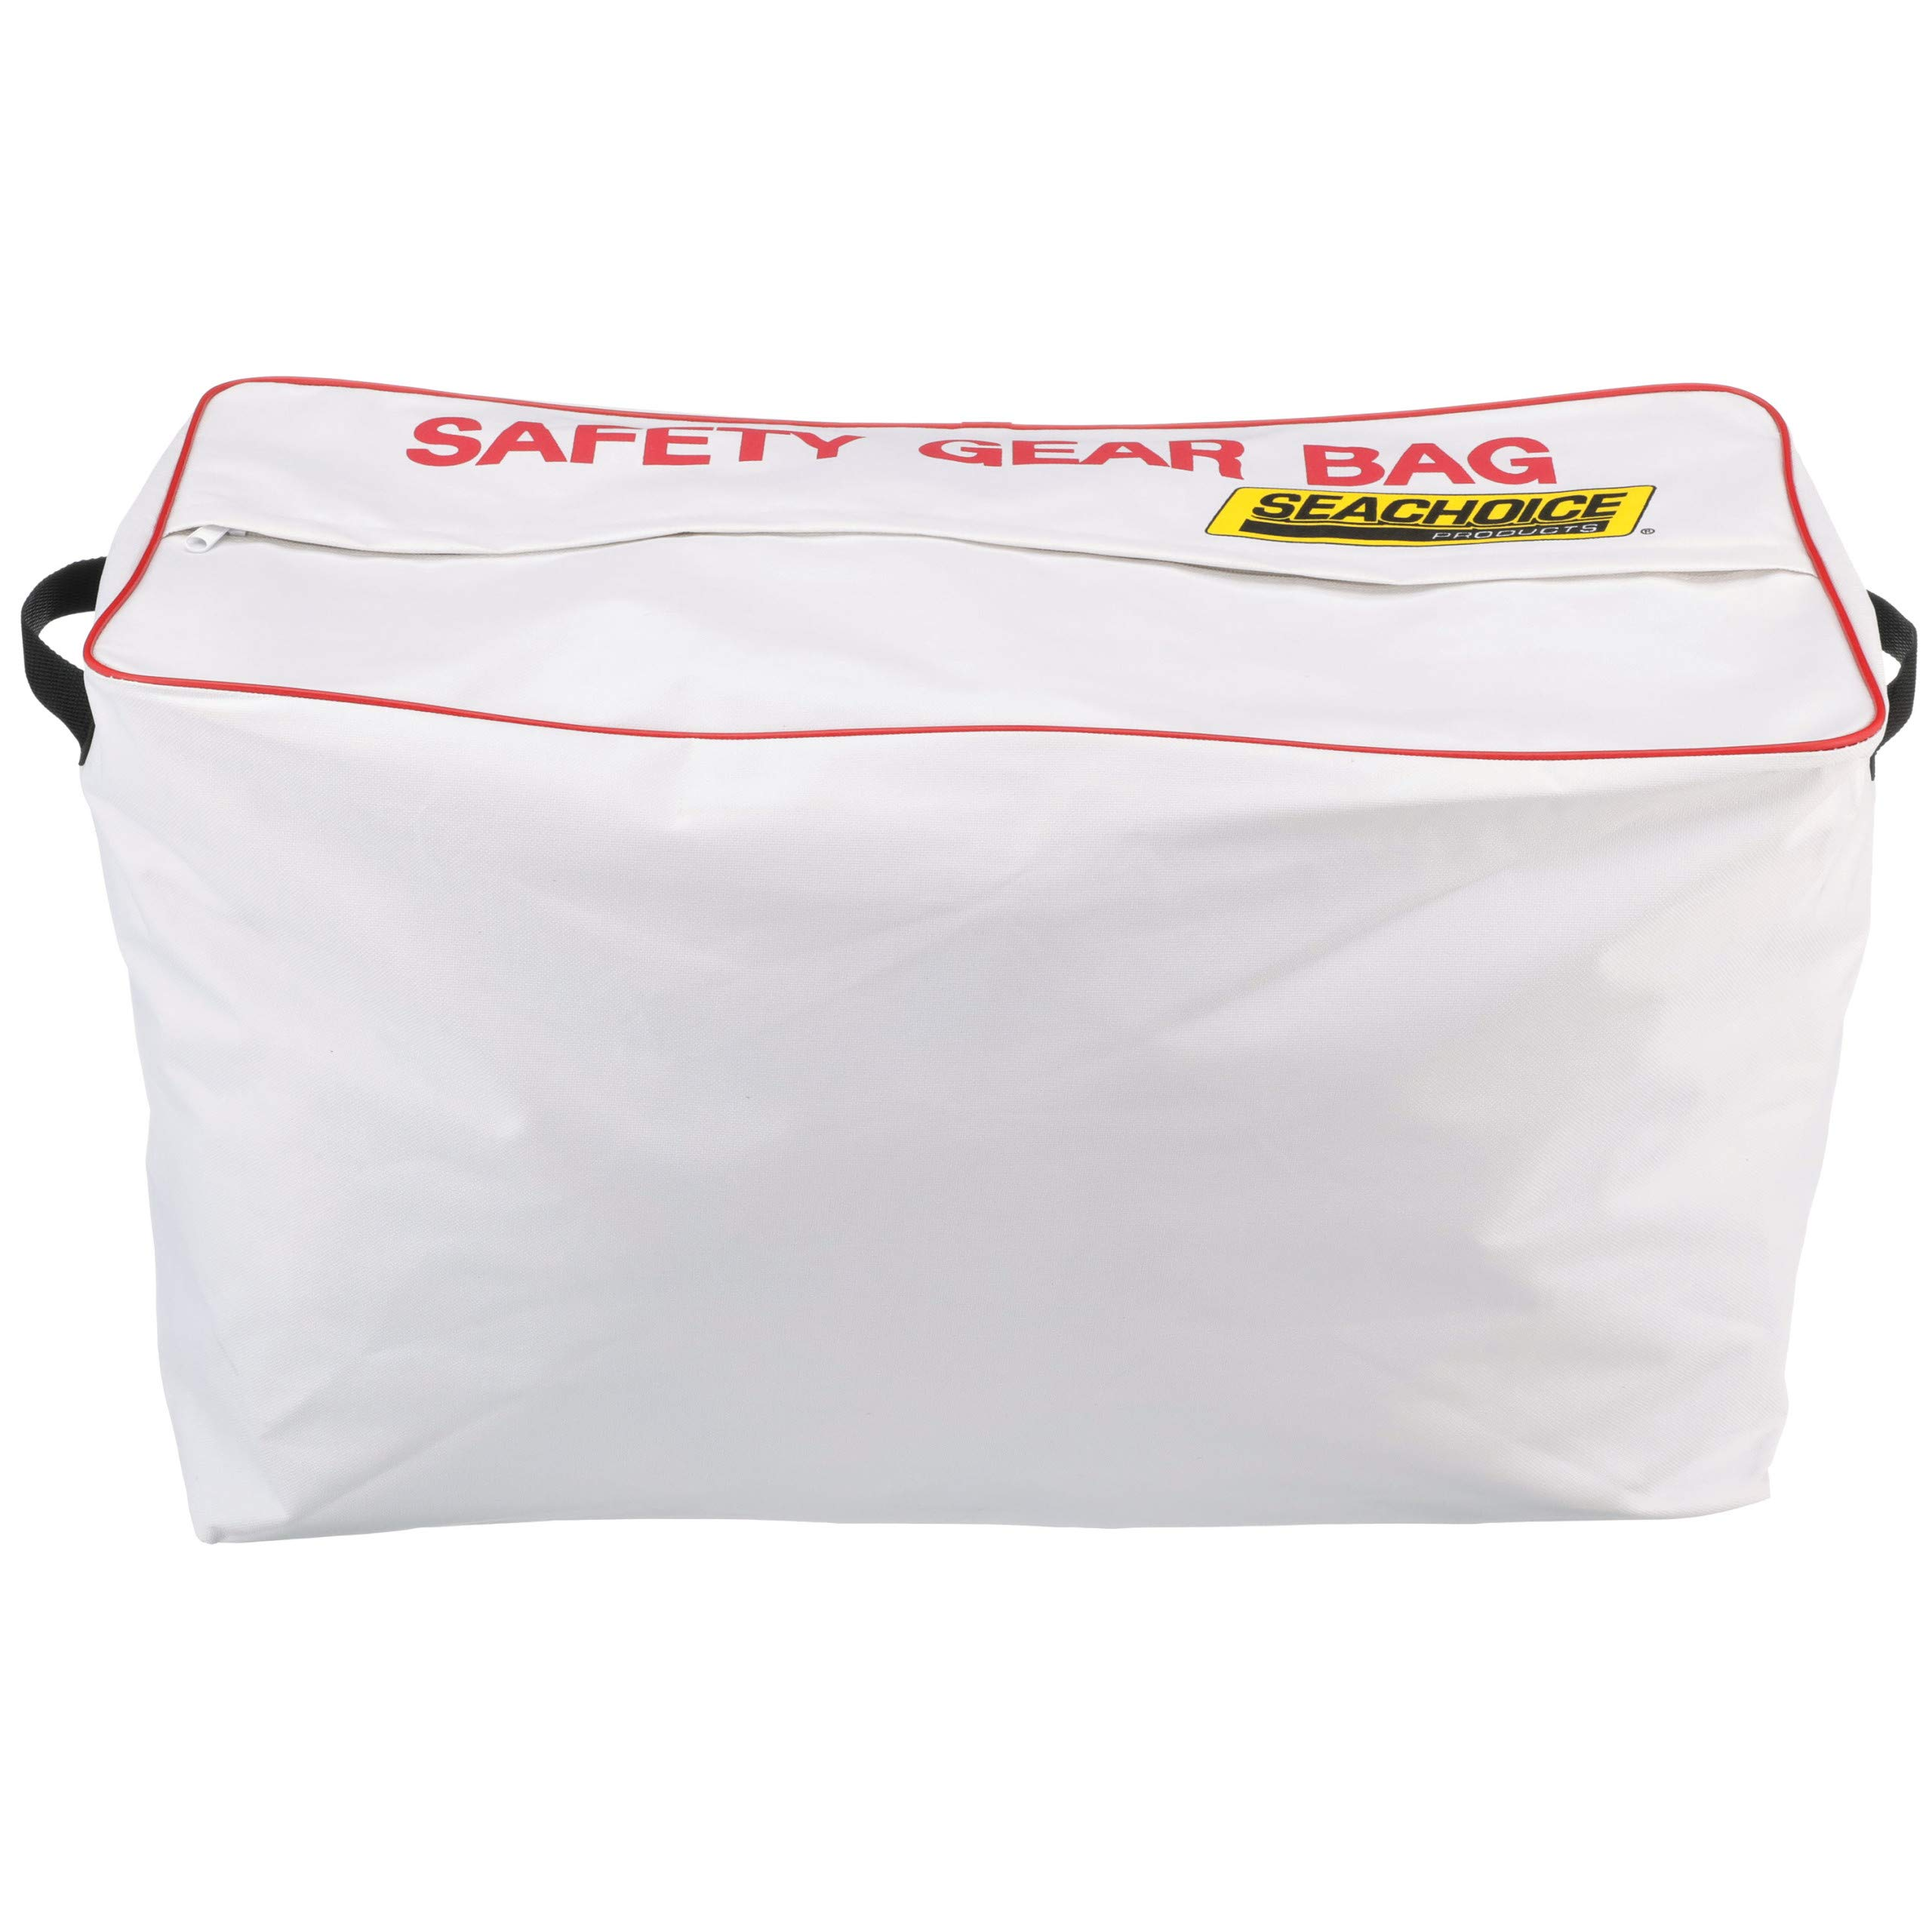 SEACHOICE 44980 Large-Capacity Heavy-Duty Emergency Marine Safety Gear Bag, White by SEACHOICE